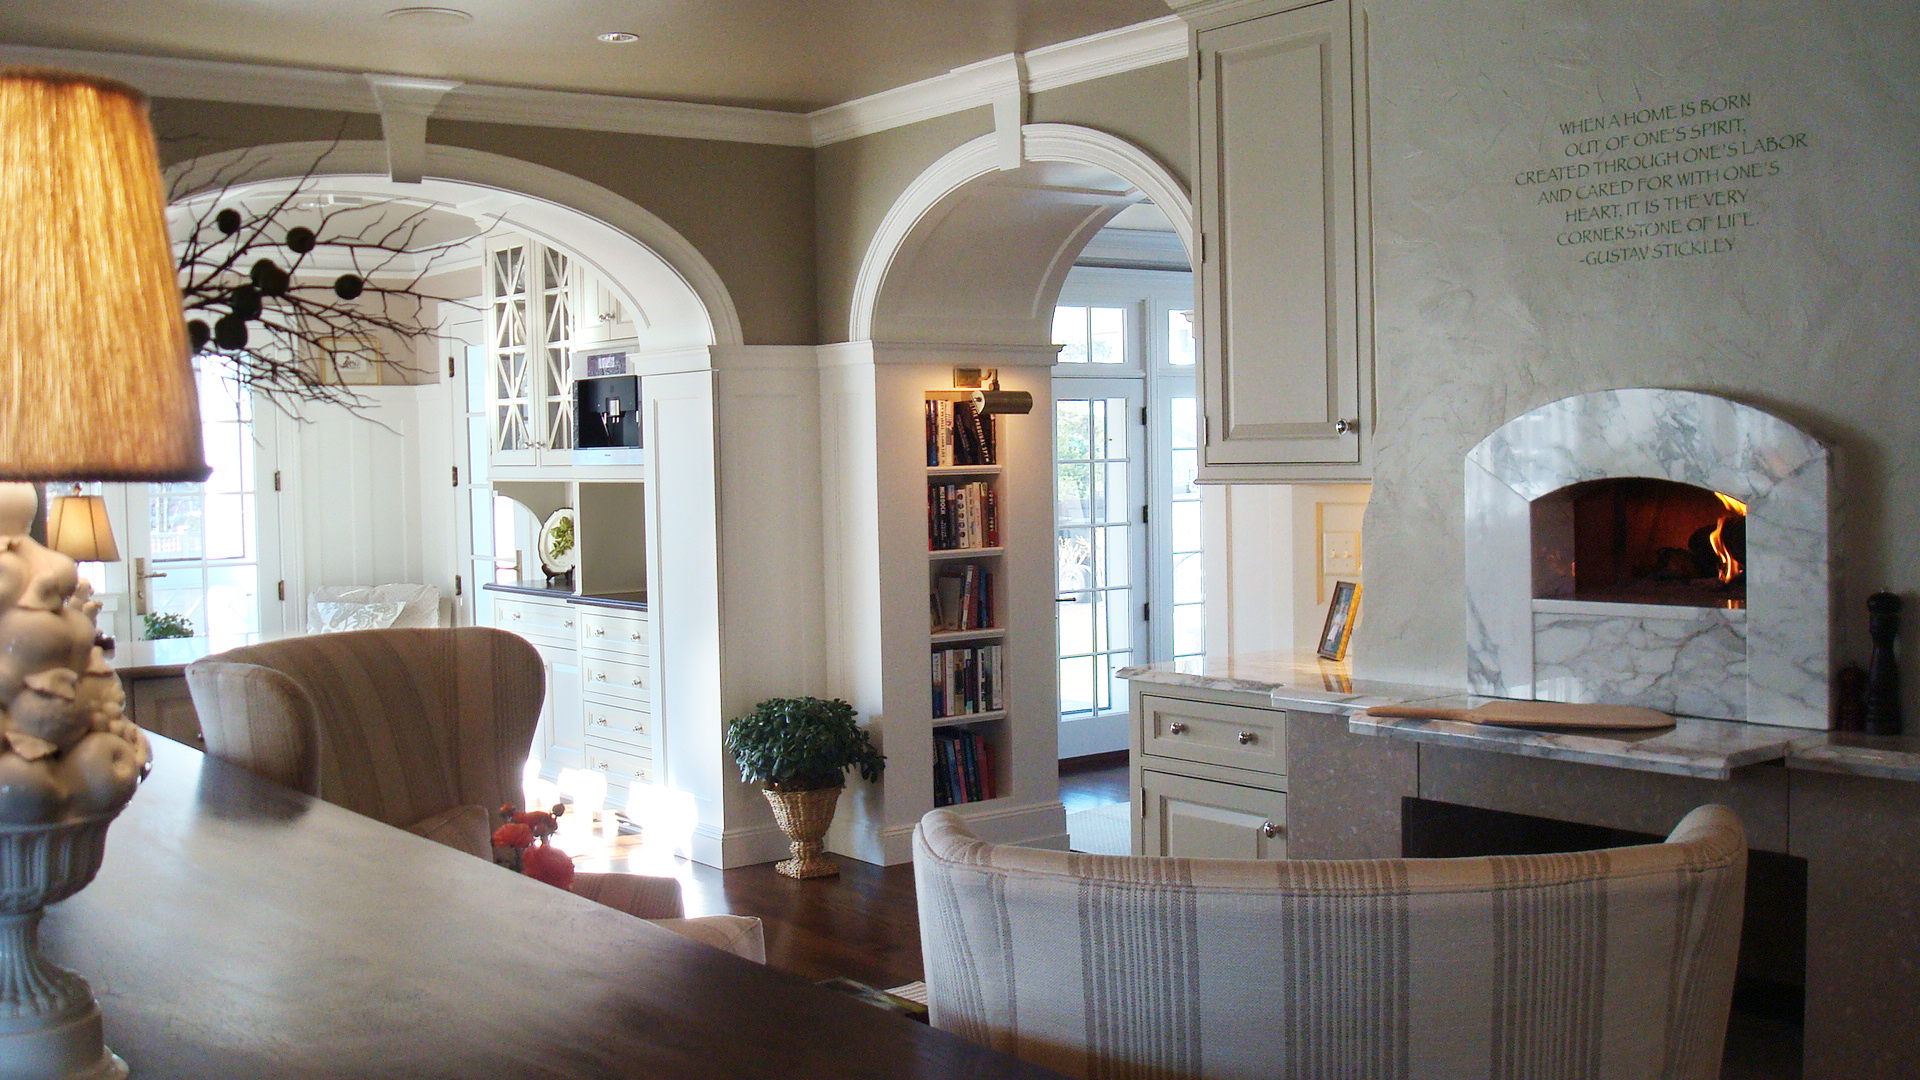 Kitchen-renovation-pizza-oven-old-greenwich-ct-interior-w.jpg